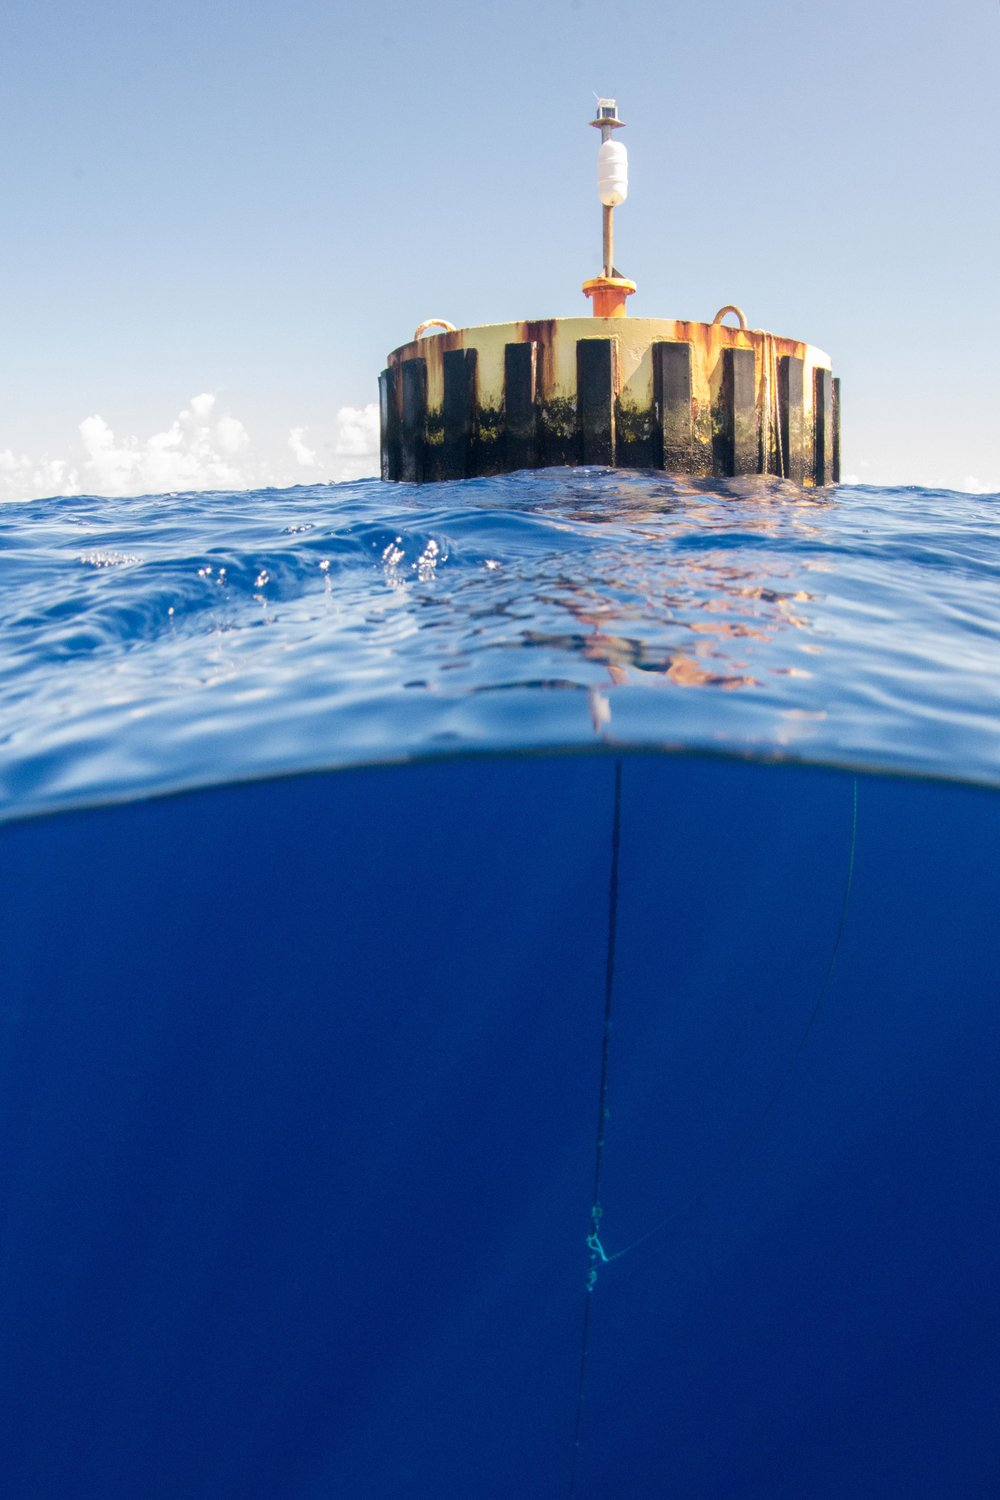 The famous Andros navy buoy